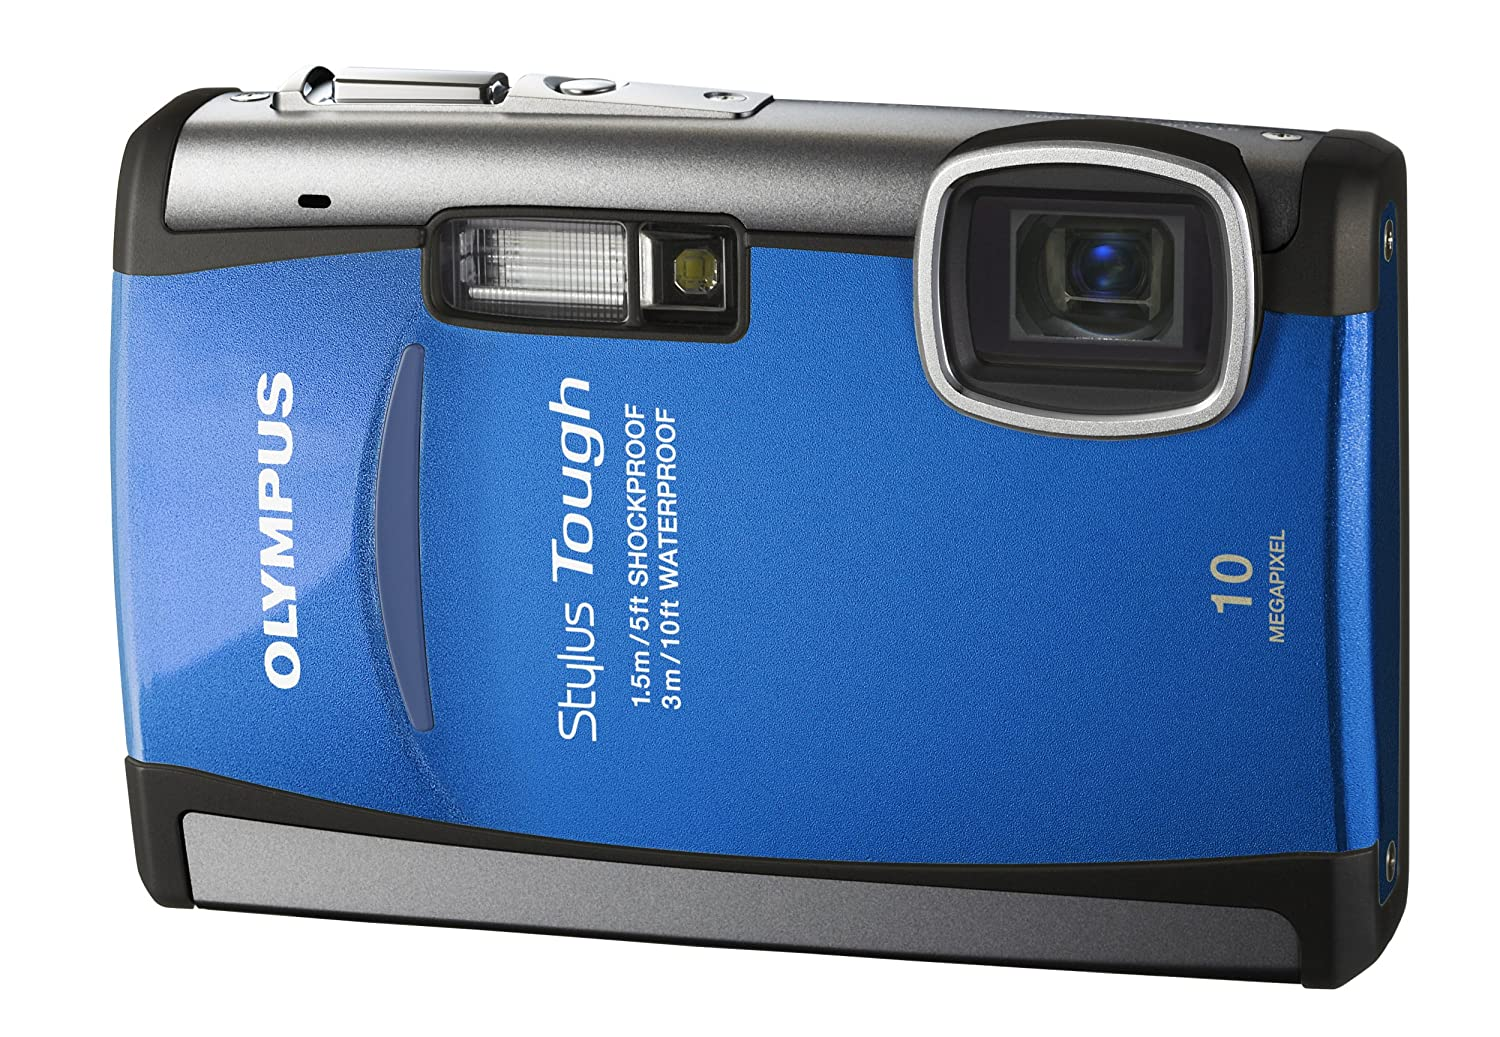 Get the latest downloads for your Olympus Camera